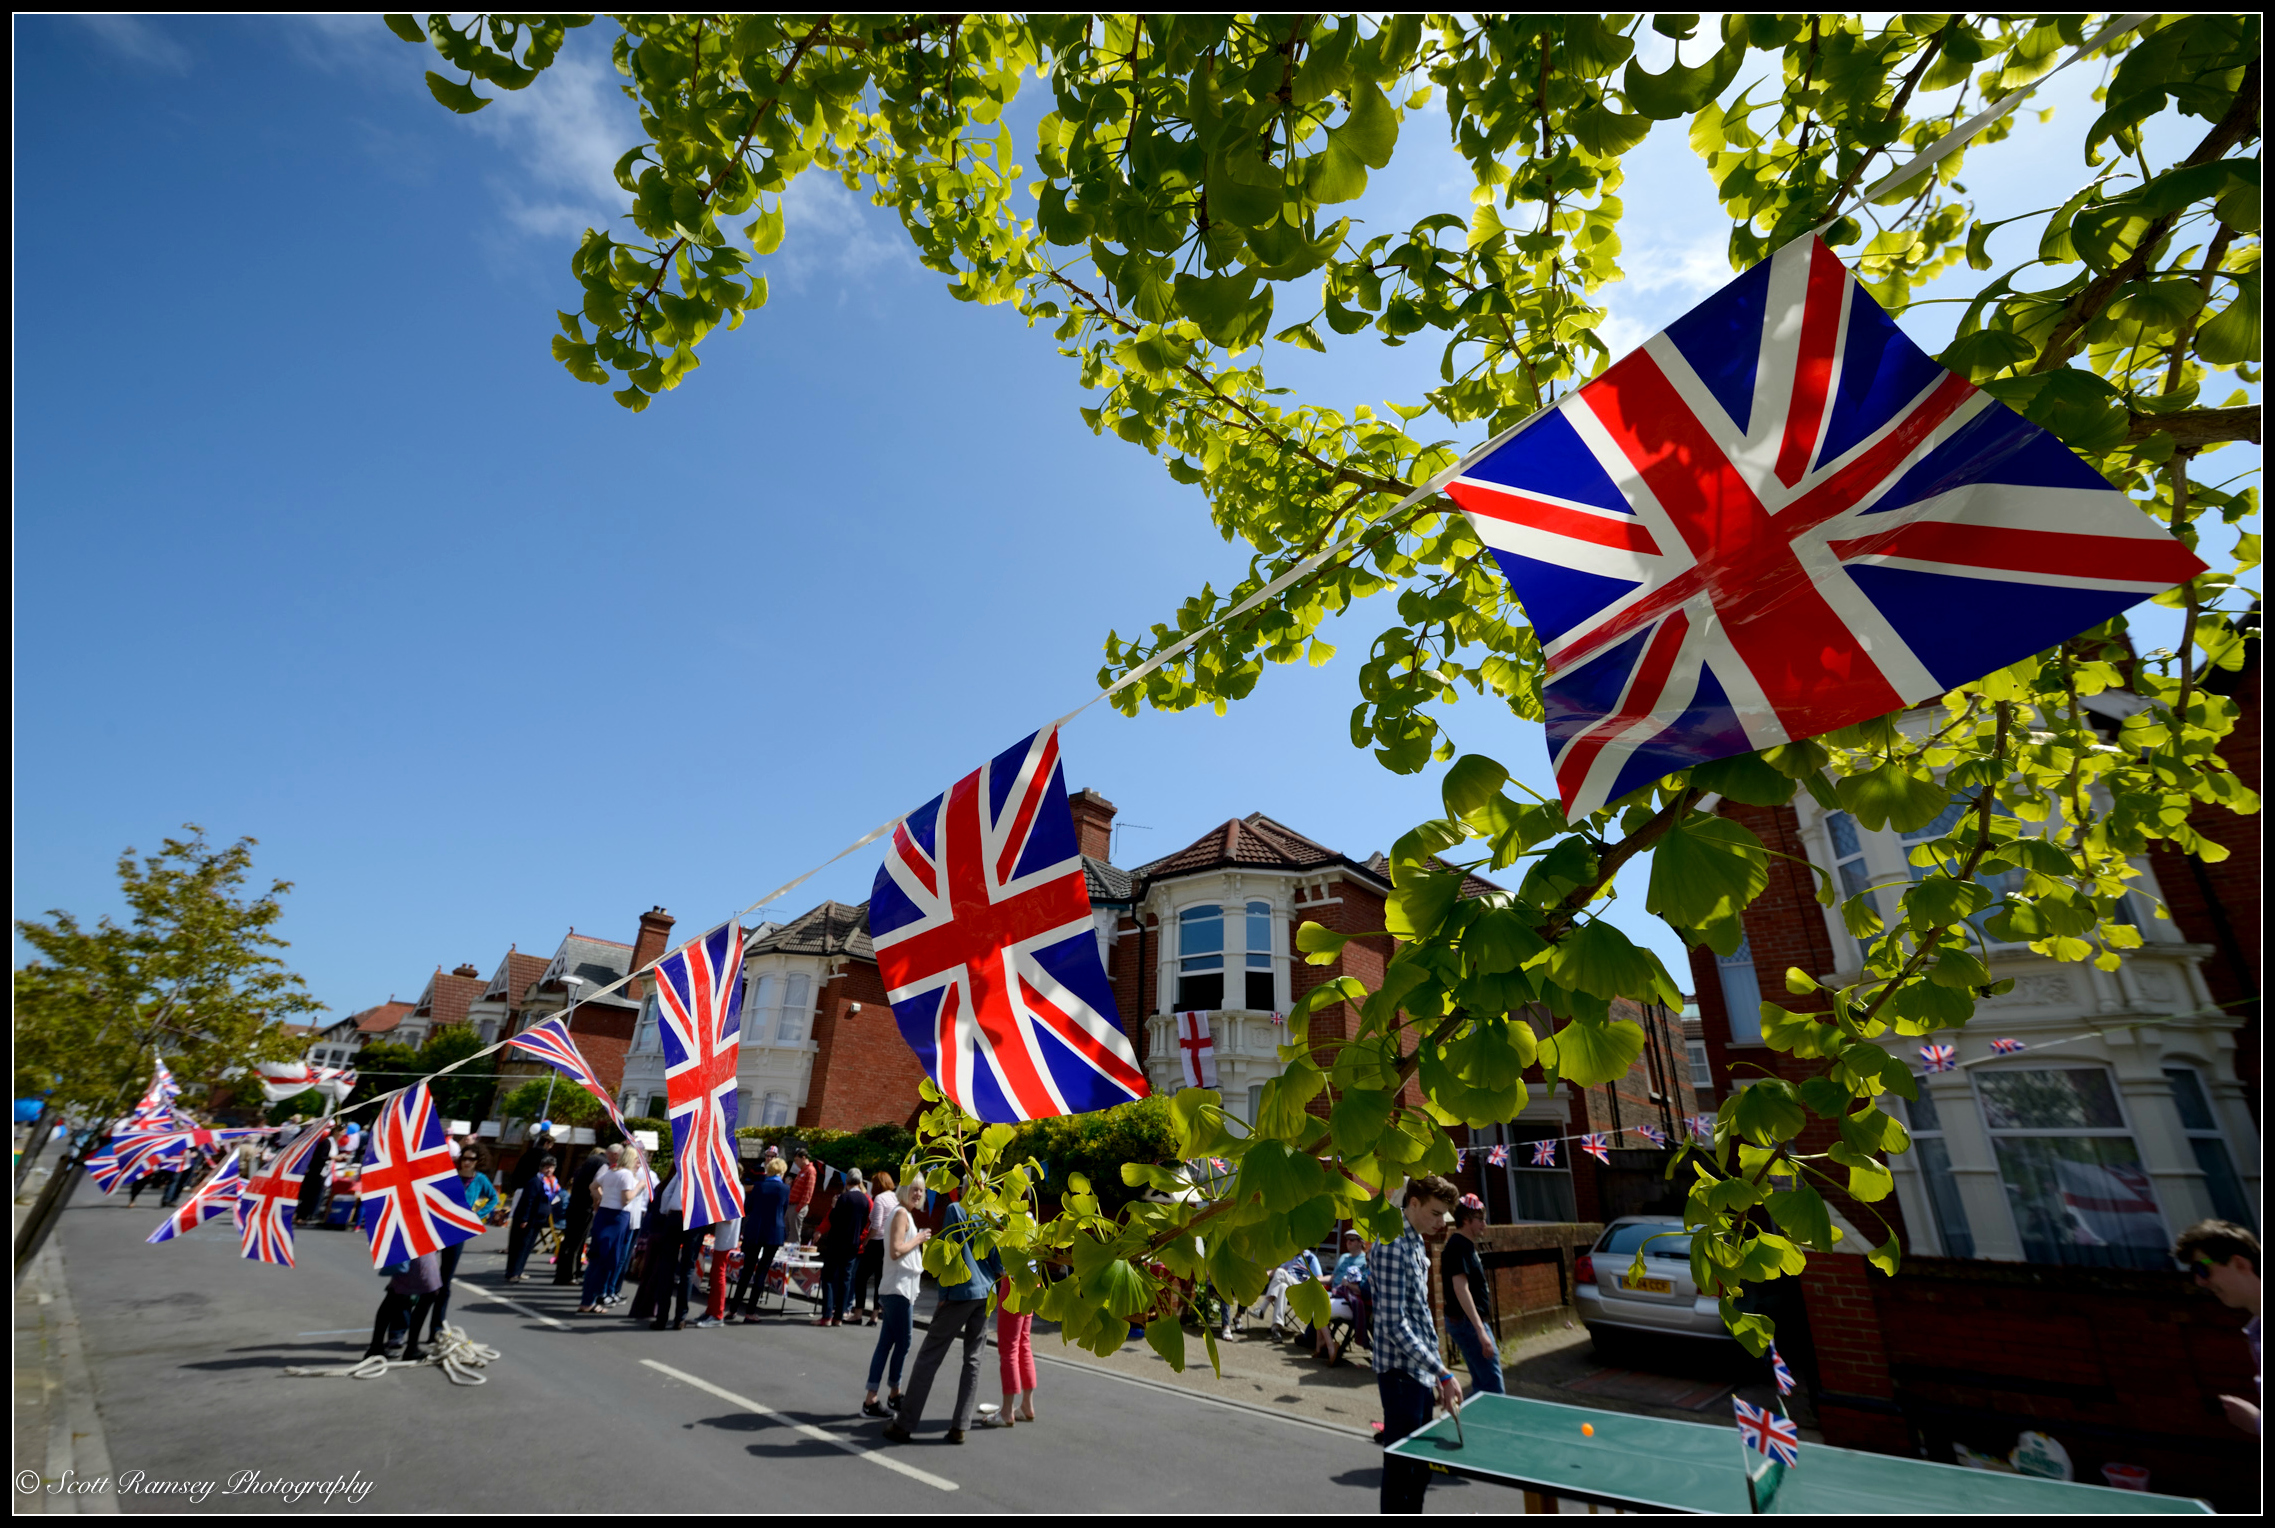 Flags hang from a tree during astreet party to mark theVE Day 70th anniversary in Southsea, Portsmouth, Hampshire, UK. © Scott Ramsey Photography.